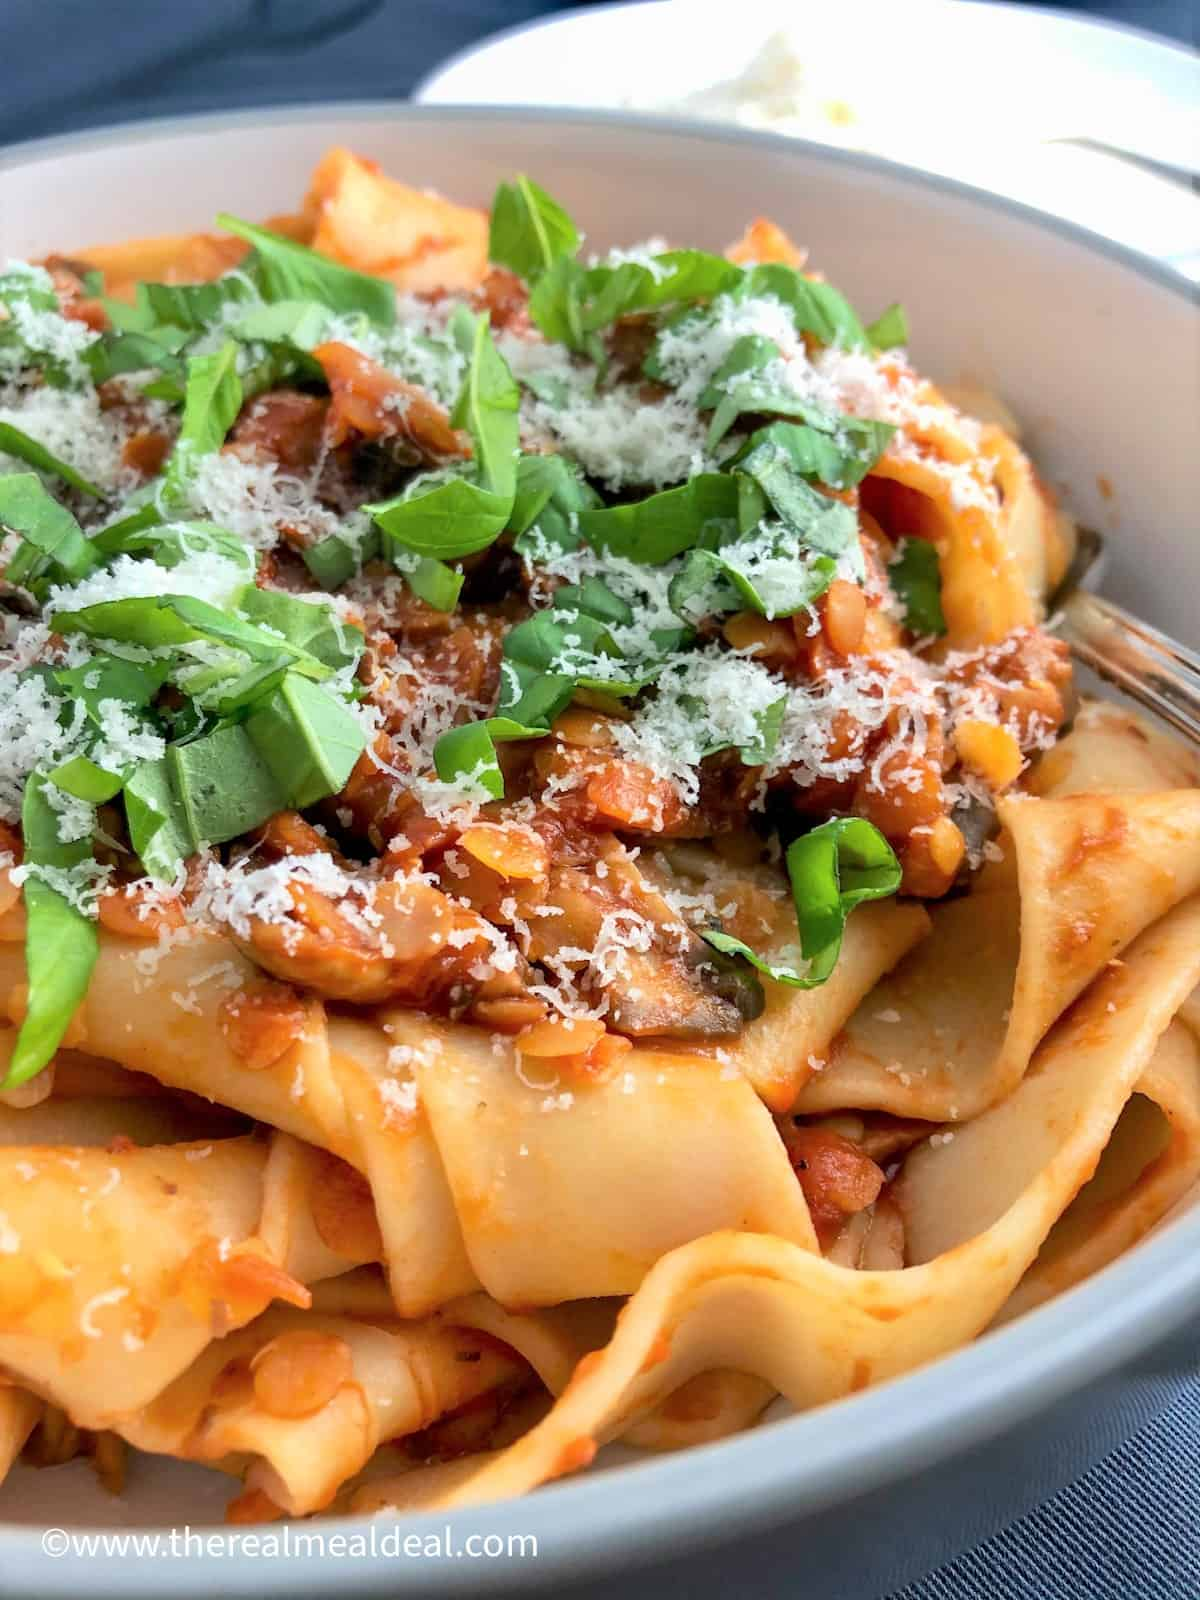 mushroom and lentil ragu served on papadelle pasta topped with fresh basil leaves and parmesan cheese